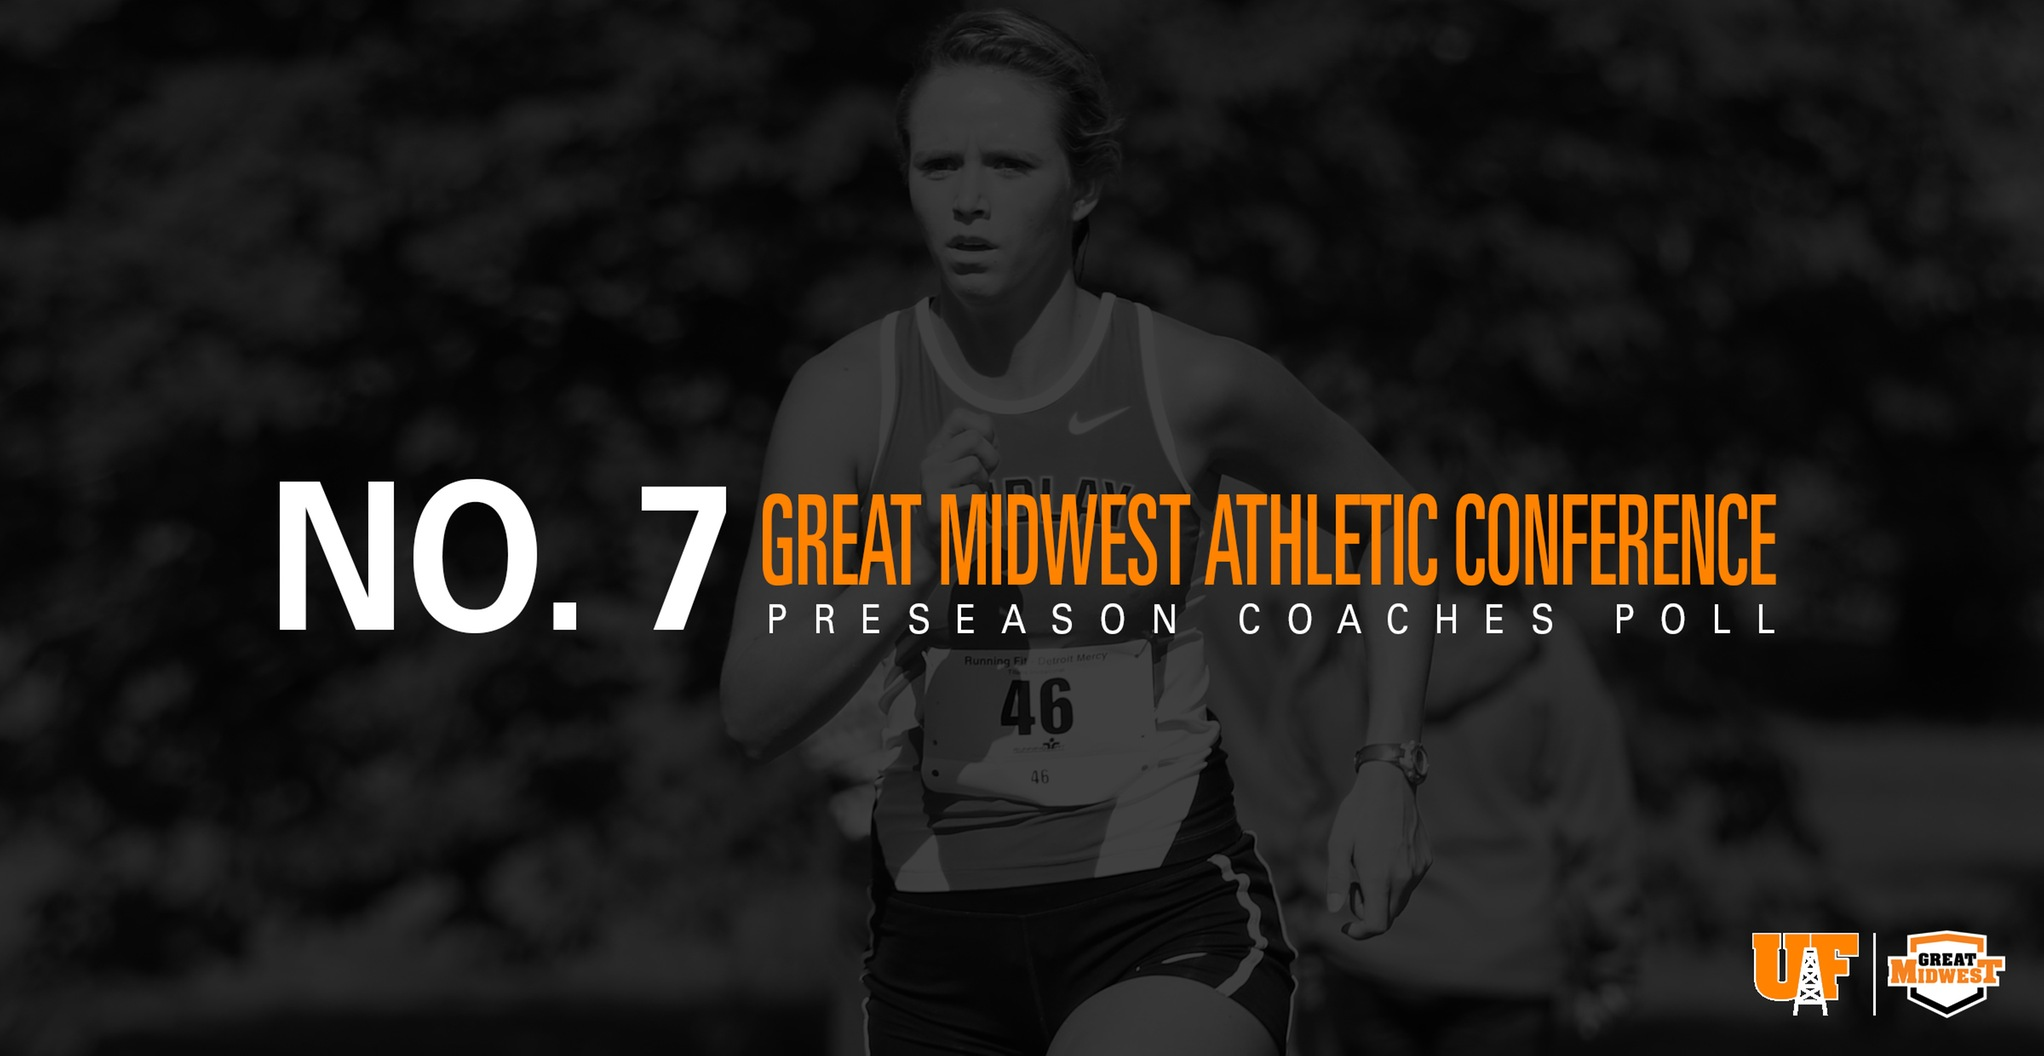 Women Picked to Finish 7th in G-MAC